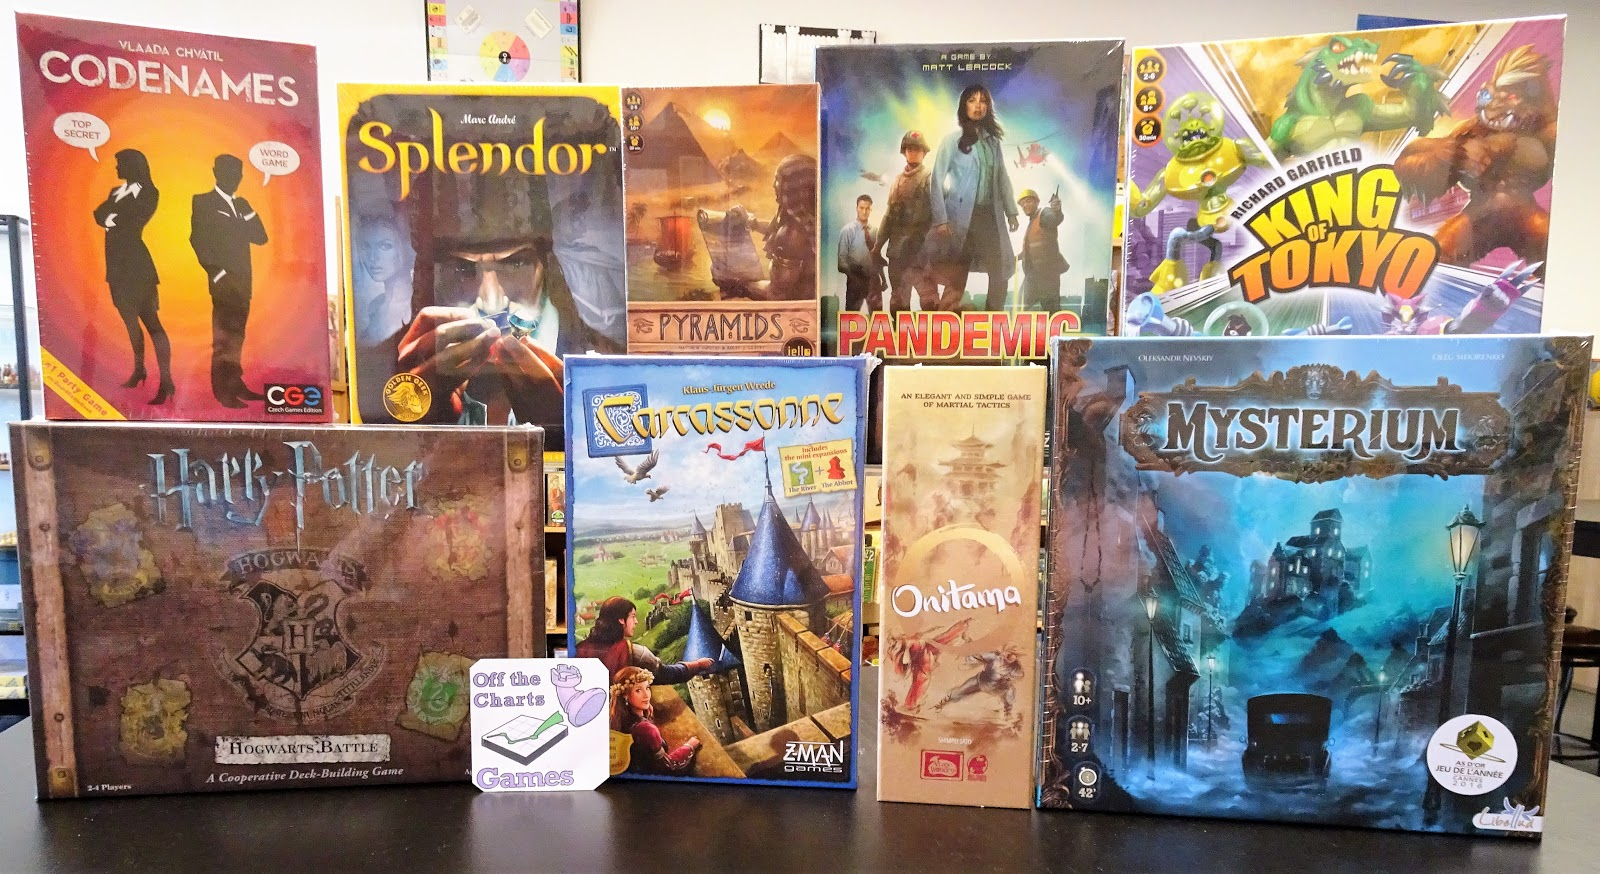 Board Game Store   EuroGames   Strategy Games   Puzzles   Off The     Most Popular Games  2017 2nd Quarter Results